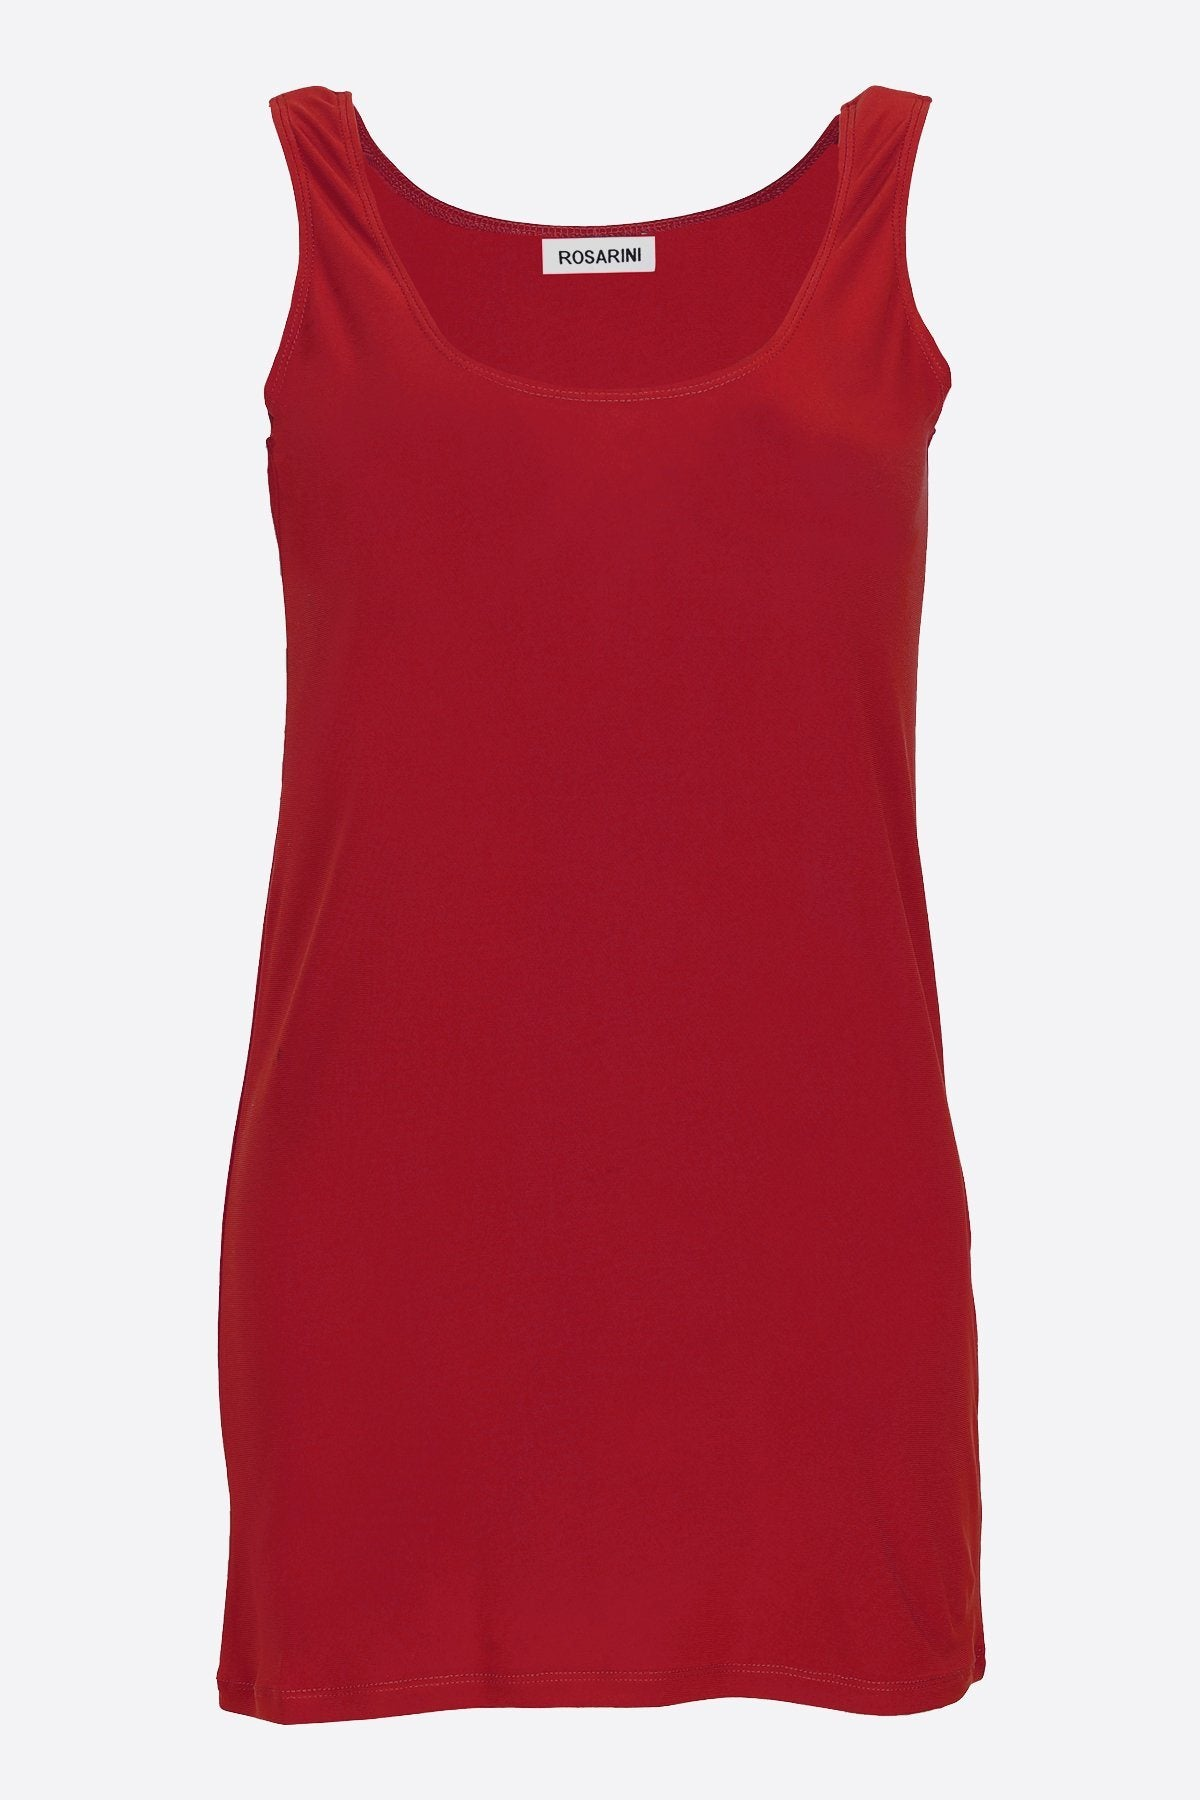 Long Singlet (Plus Size) - Women's Clothing -ROSARINI